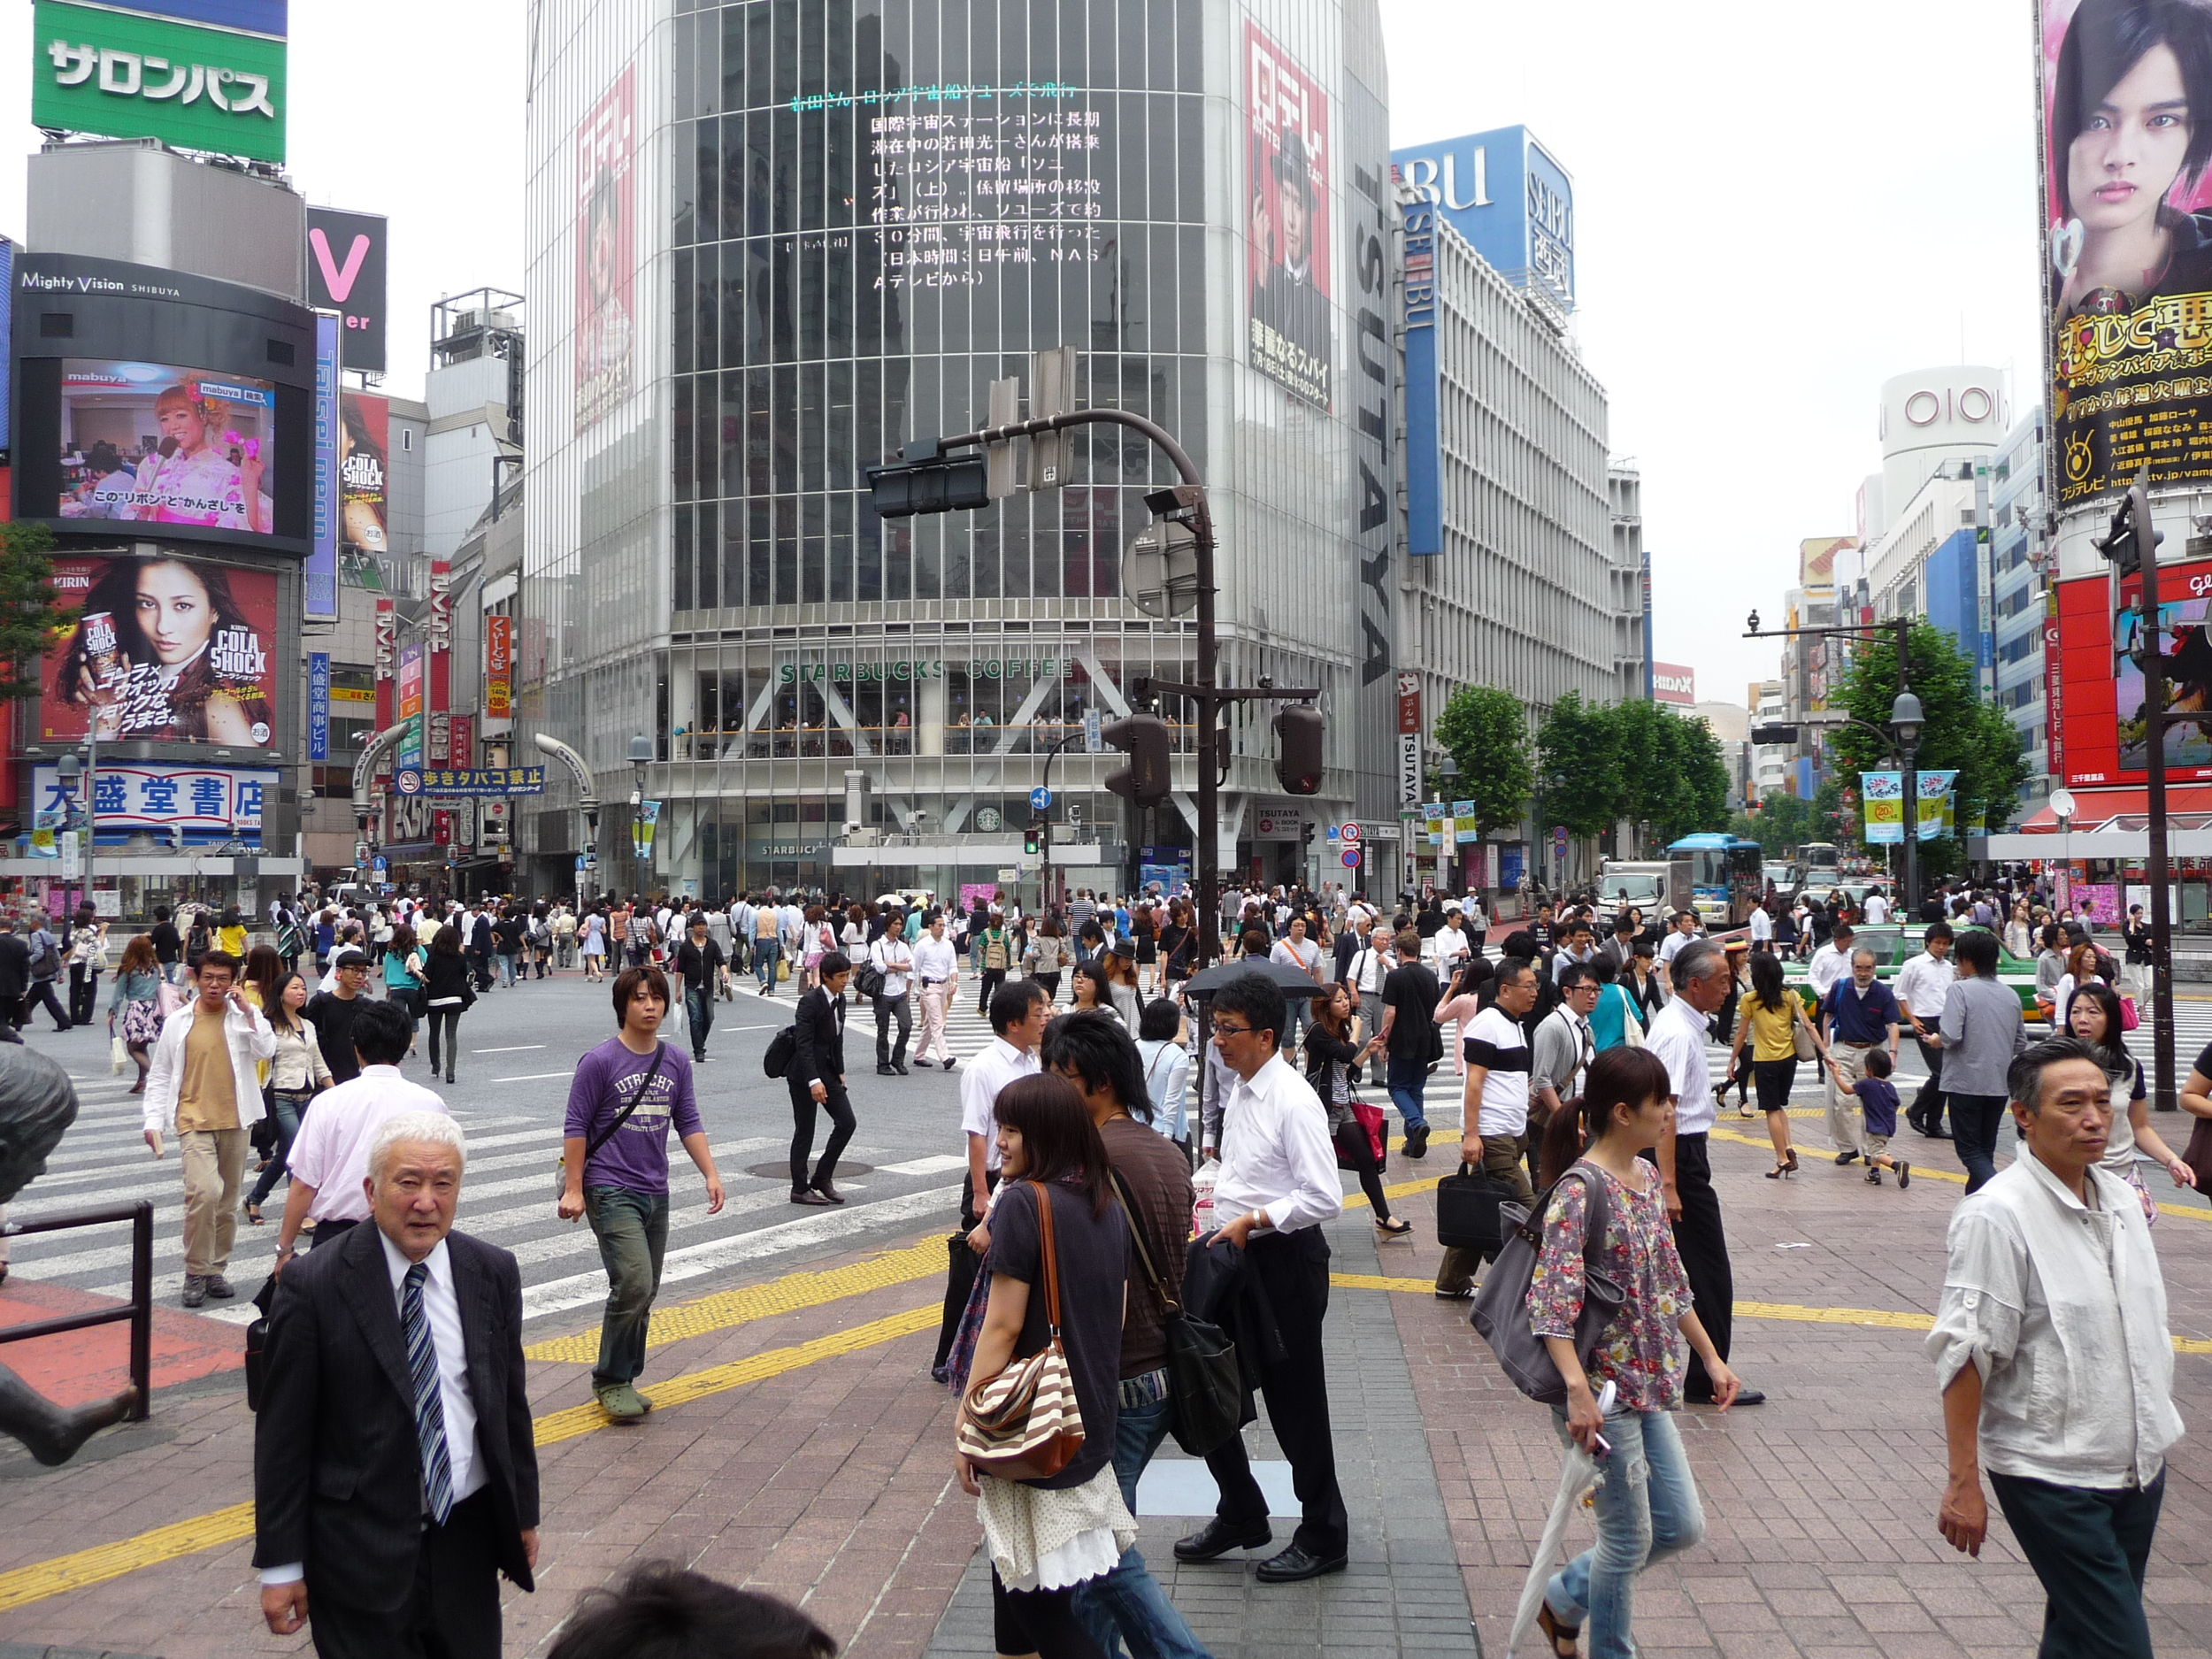 """Tokyo's famous Shibuya """"Scramble crossing"""" - five streets, plus a busy metro station, dozens of buses, and multiple shopping arcades. Said to be the busiest single spot on Earth - incredible for people-watching ... from a safe distance."""